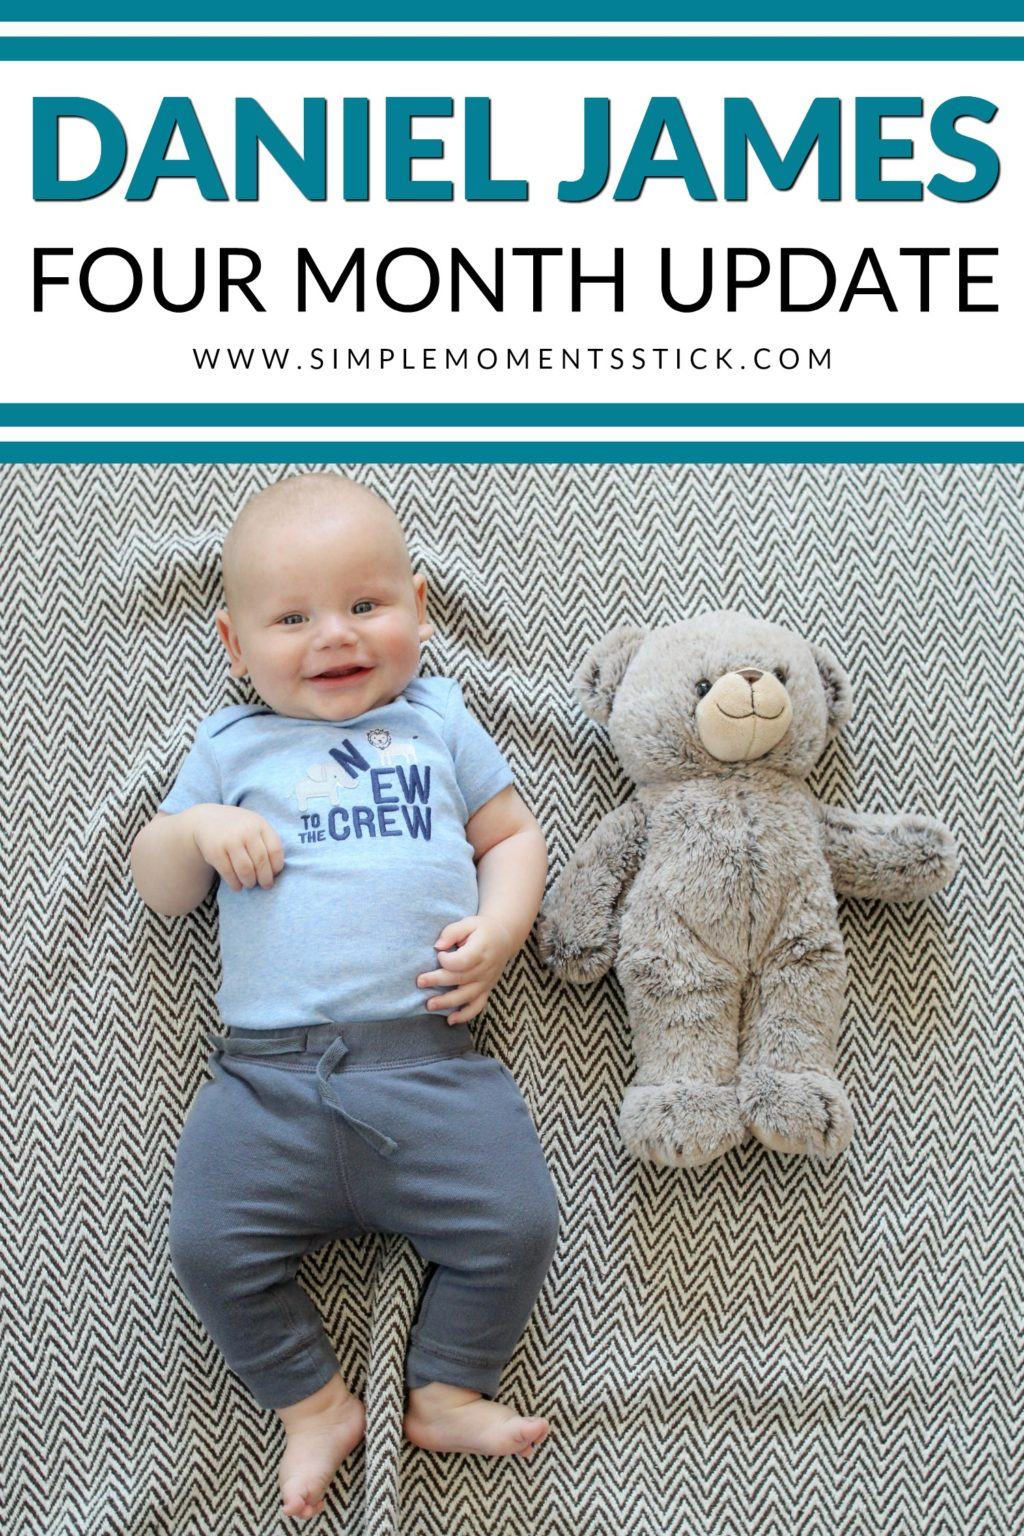 Four month update - Daniel